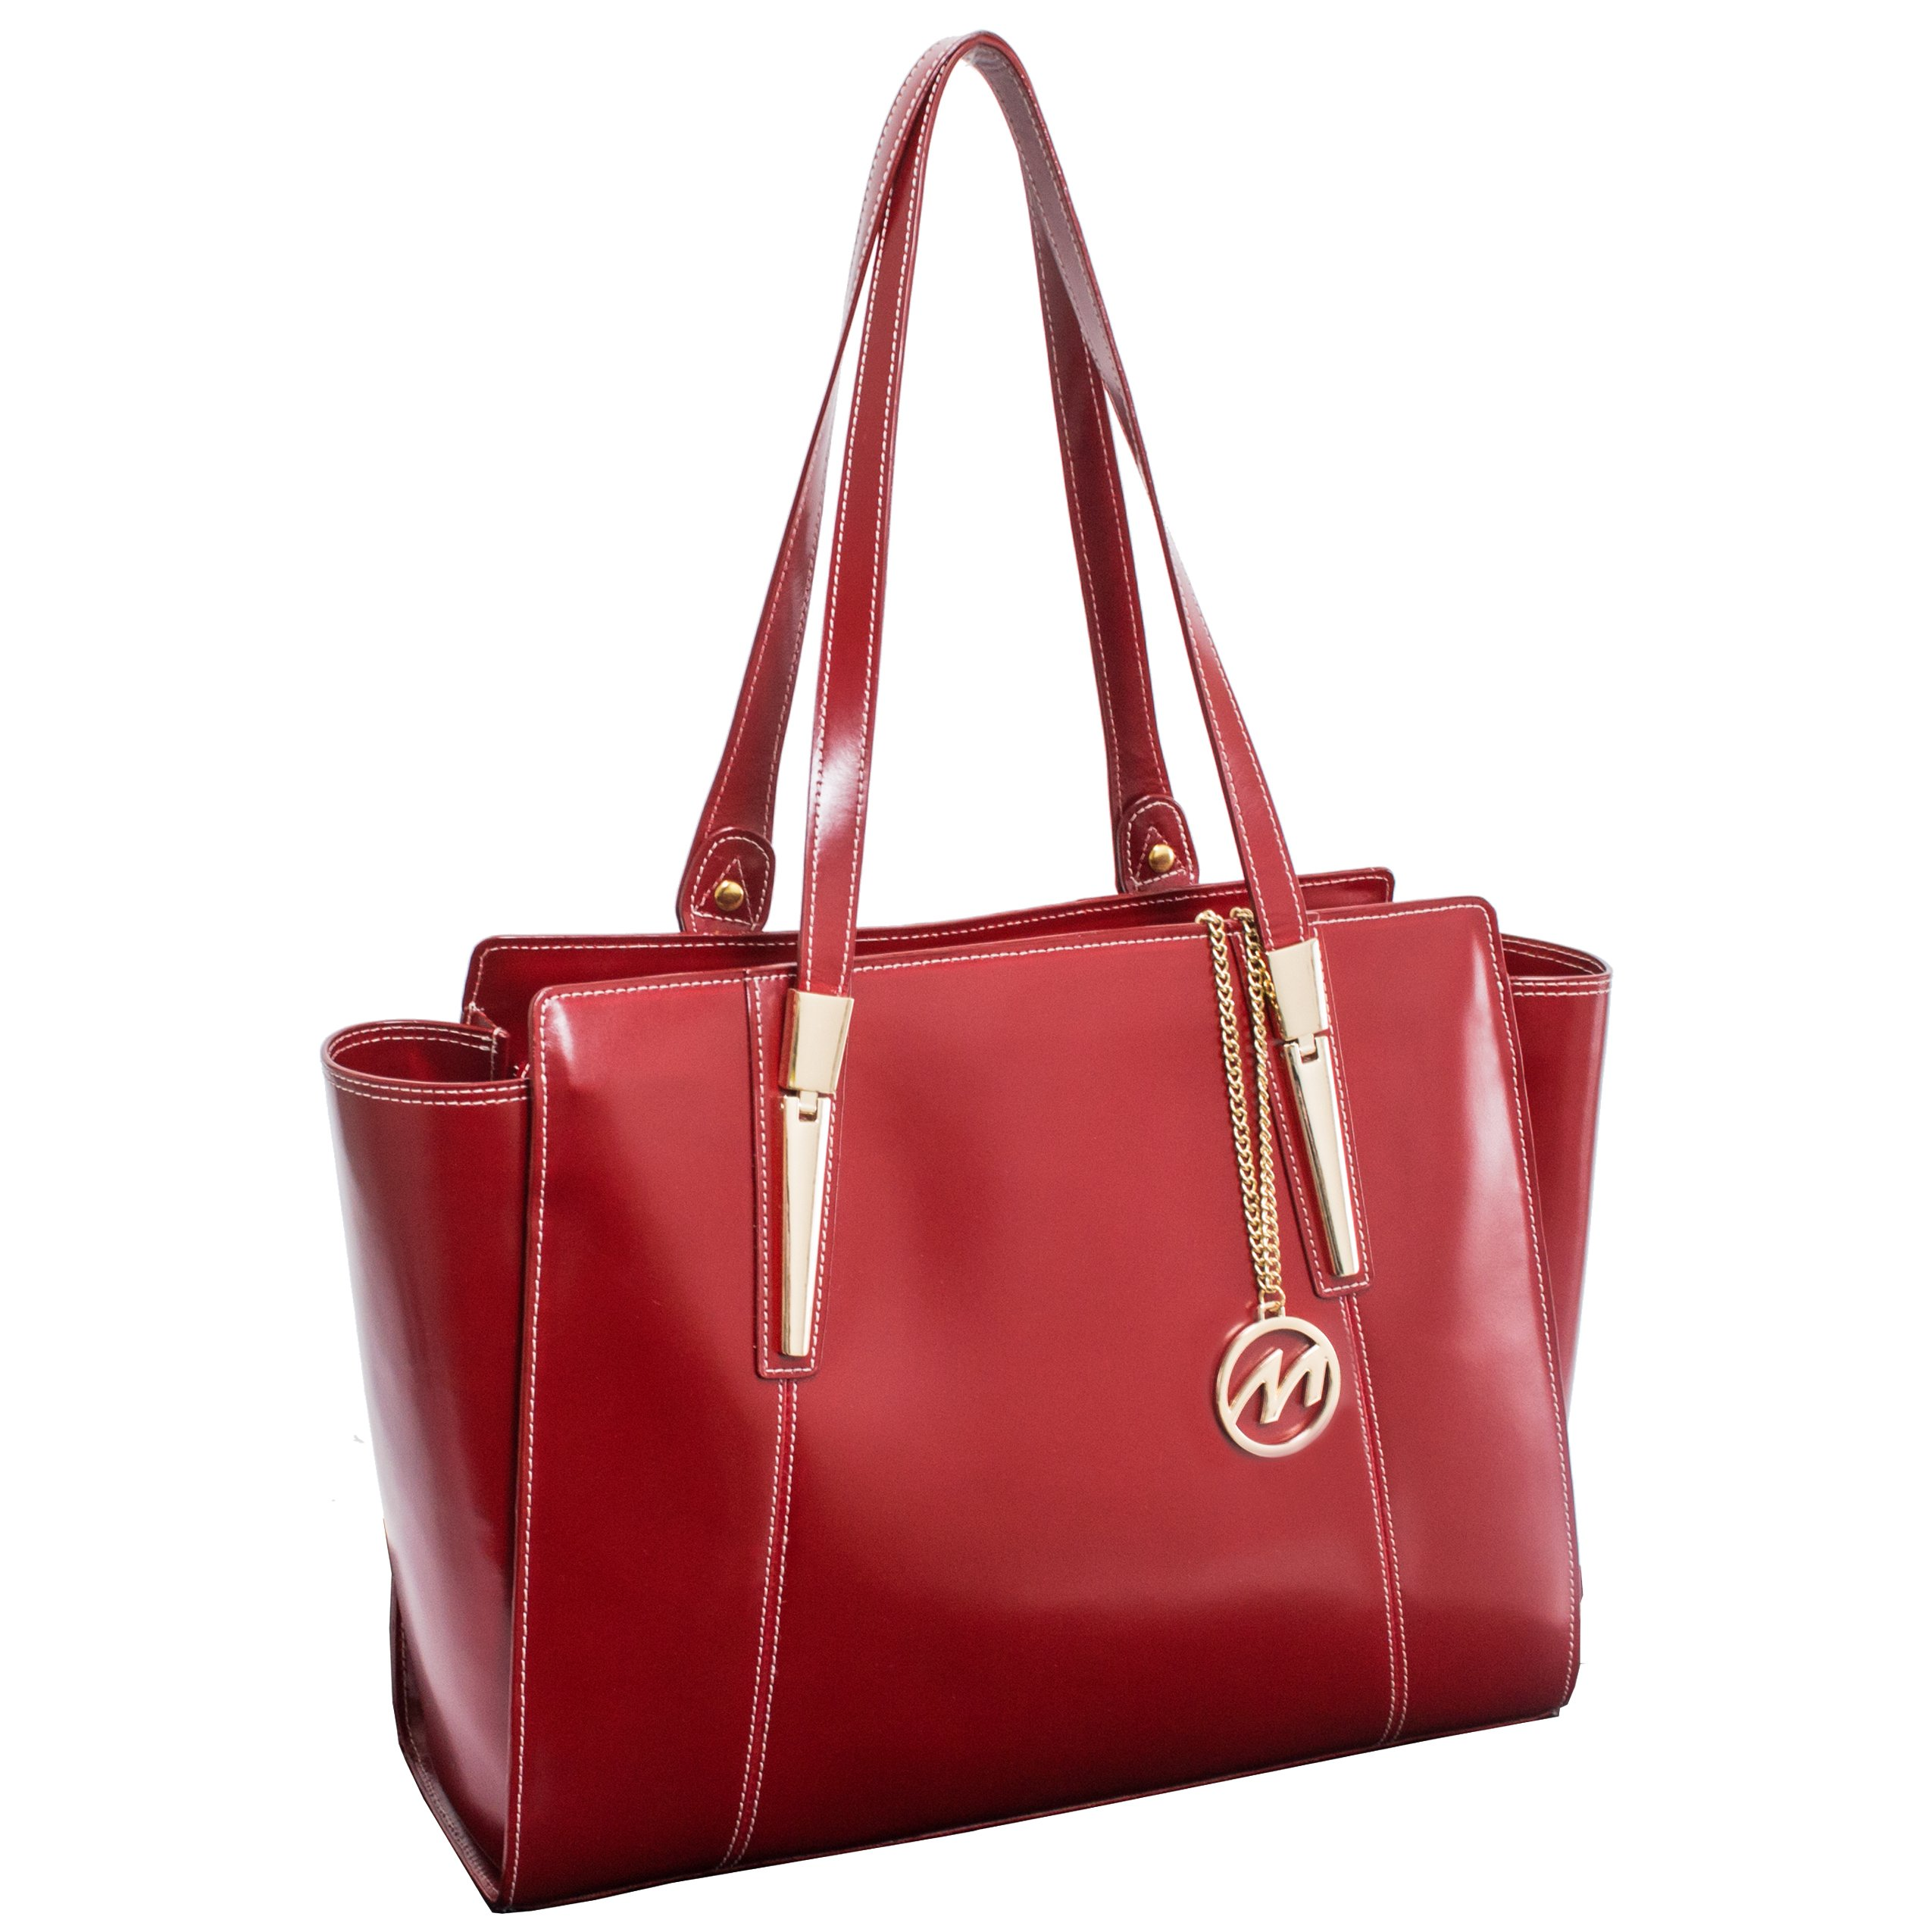 McKlein USA [Personalized Initials Embossing] Womens ALDORA Leather Shoulder Tote Bag in Red